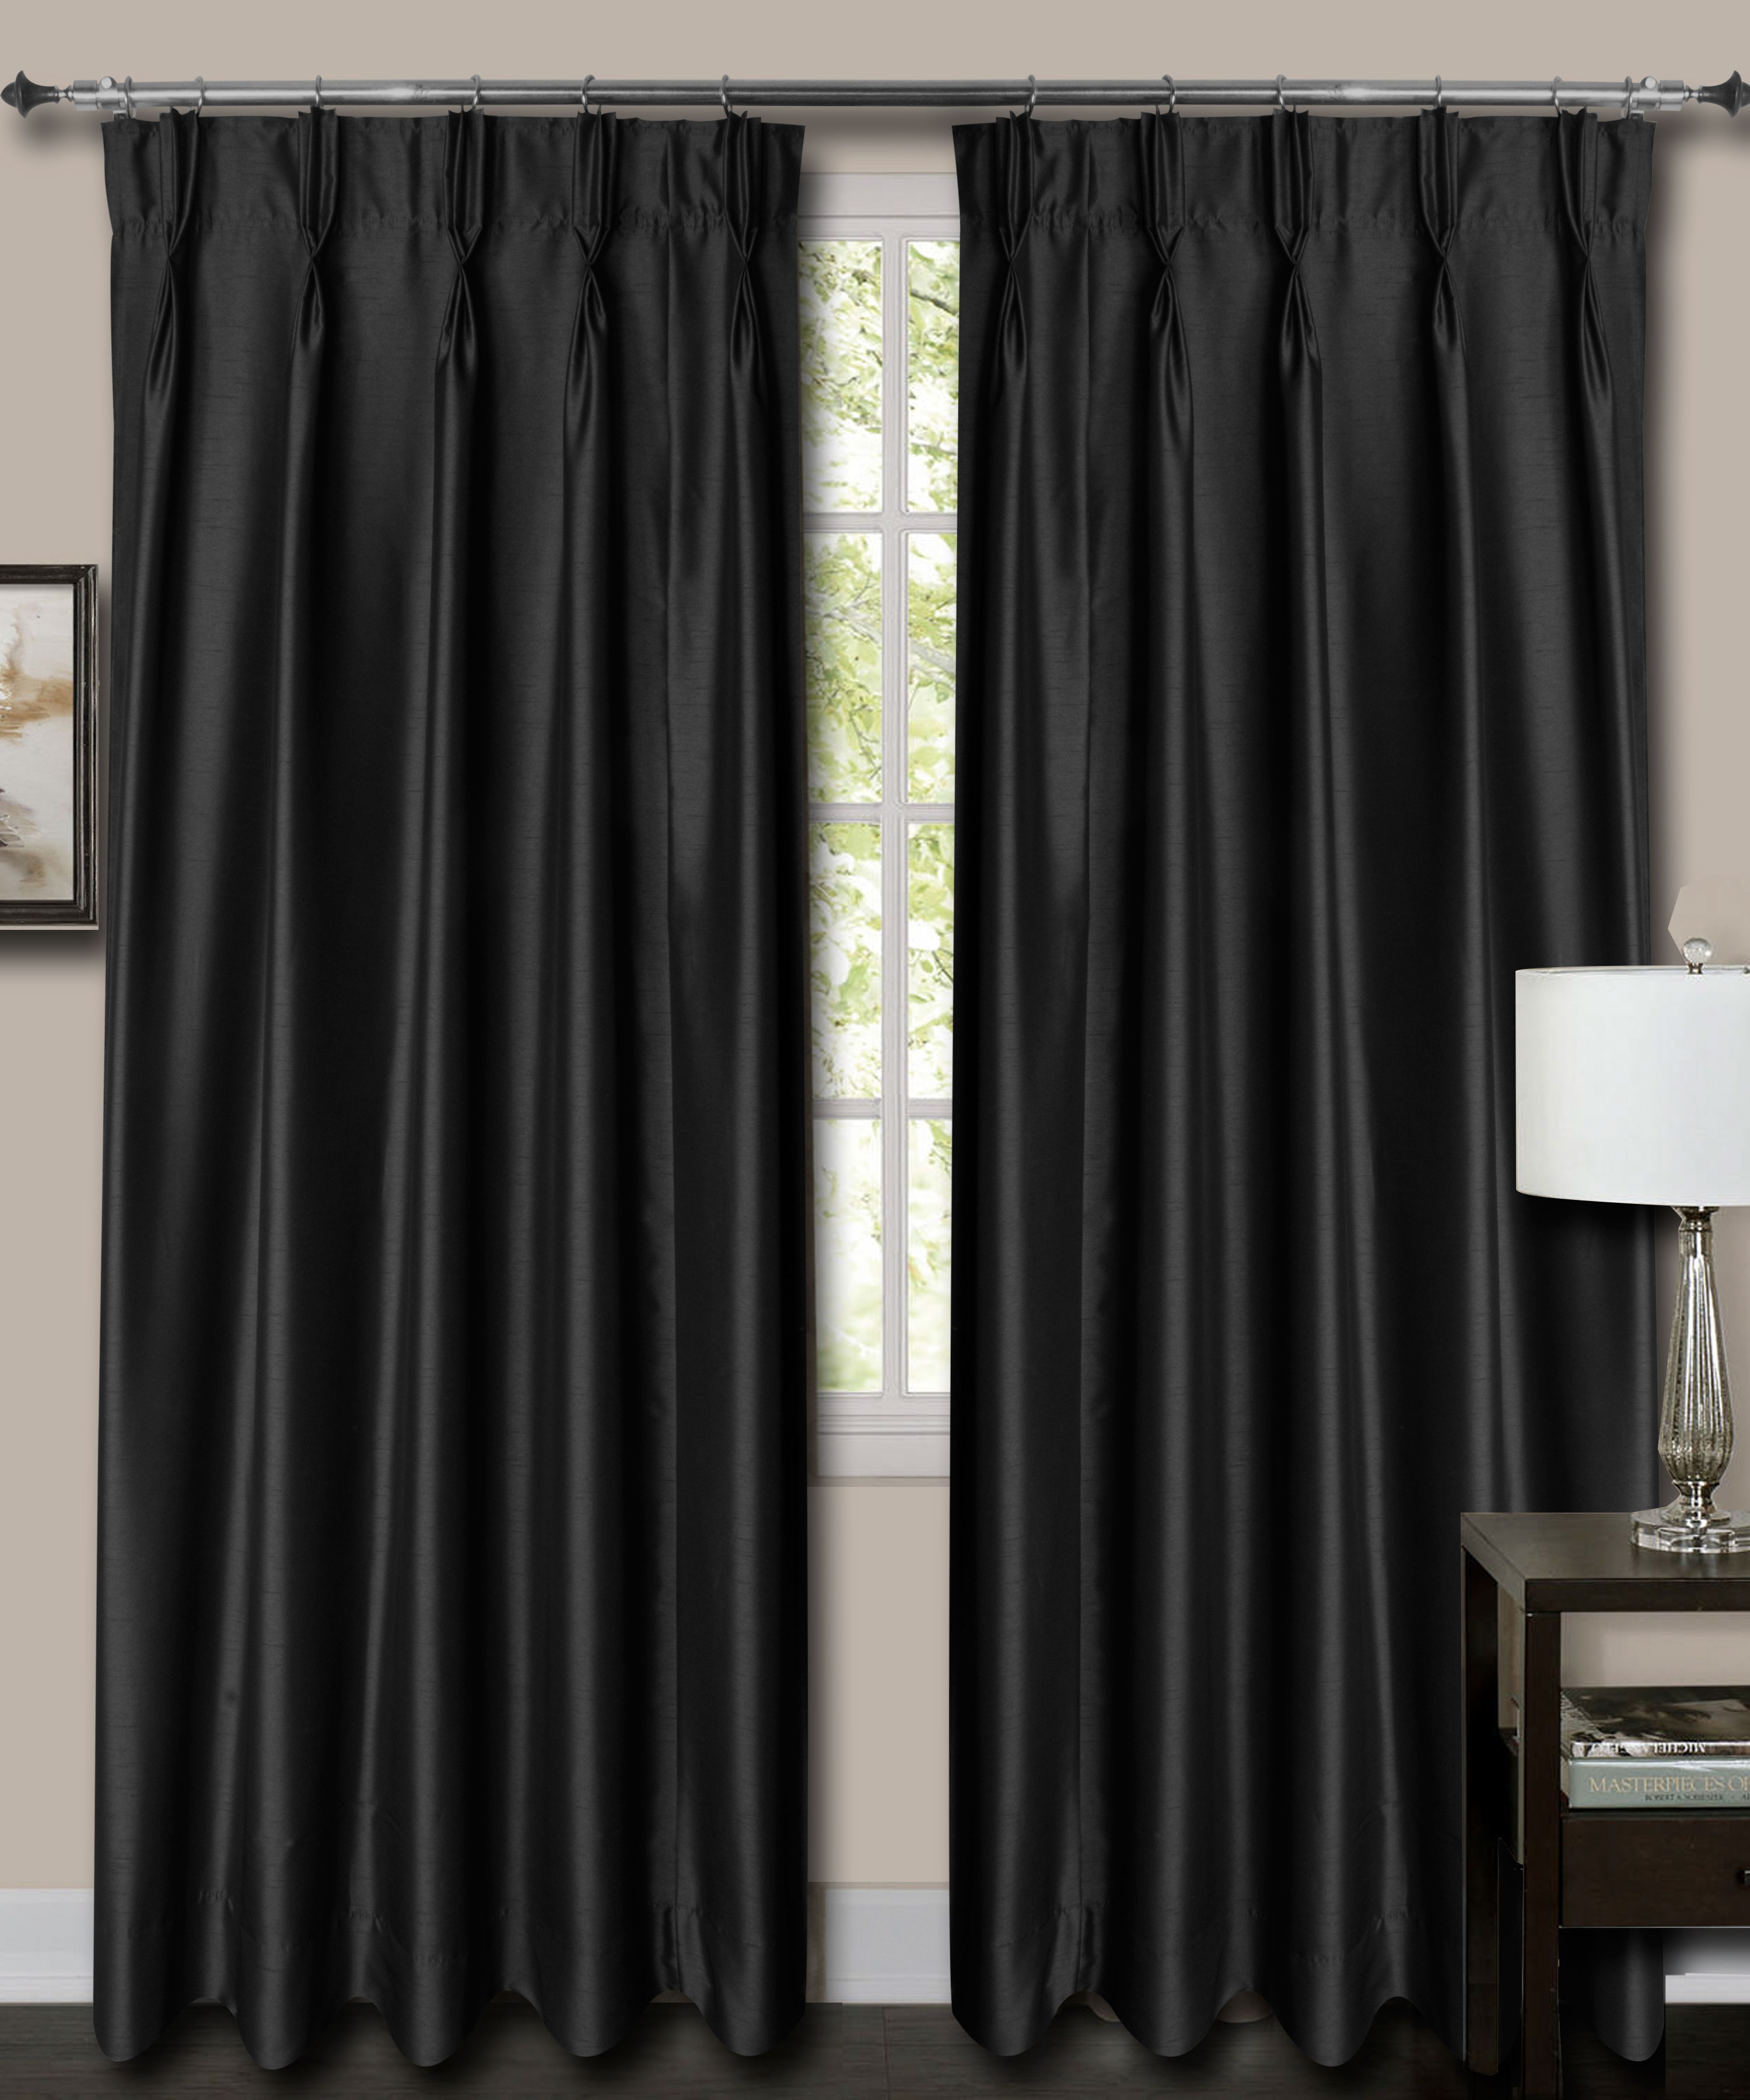 "French Pleat Top Black Faux Silk Dupioni Curtains. (39"" Wide, 5 Feet Long, Without Lining)"